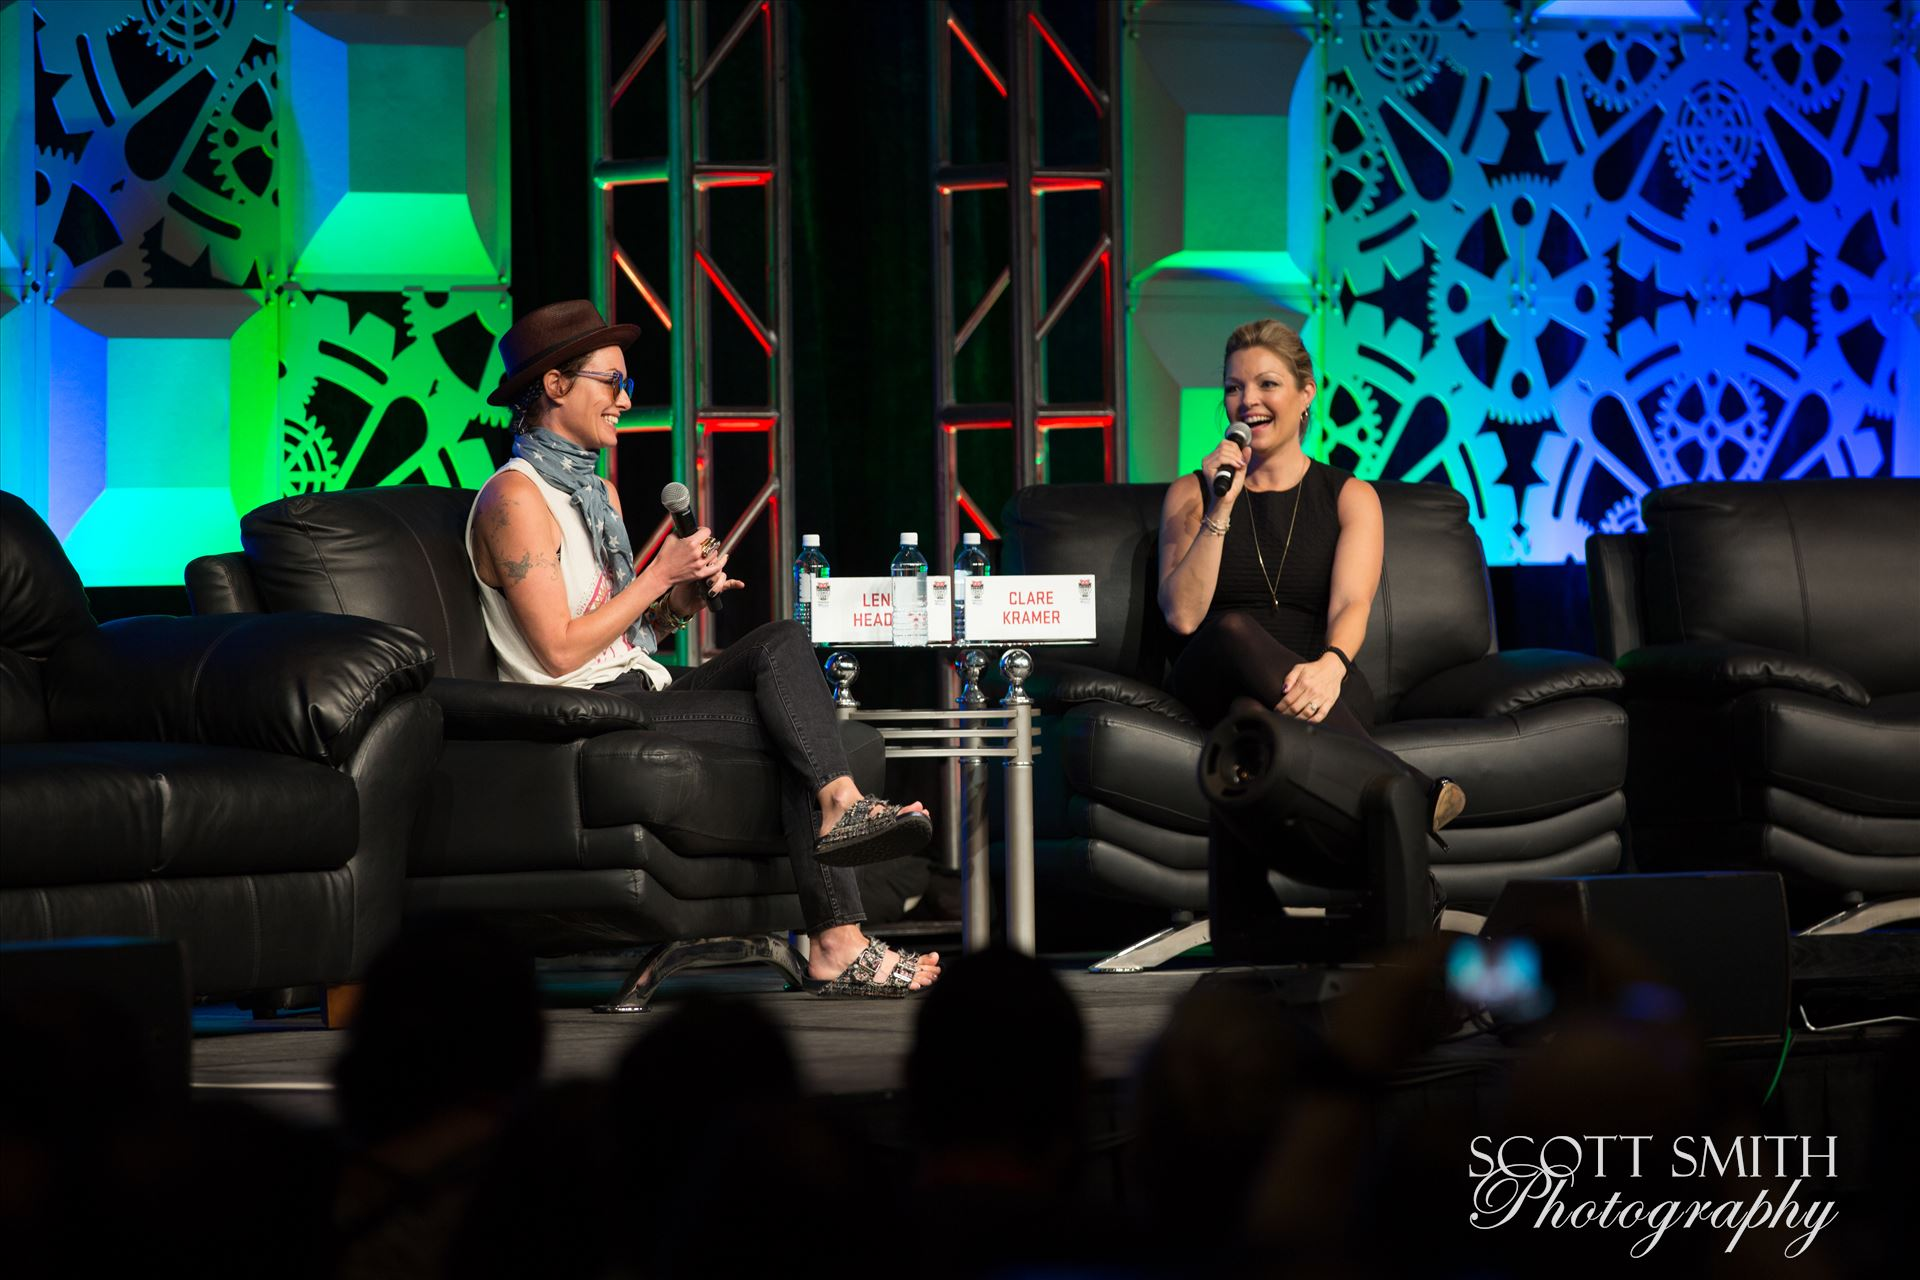 Denver Comic Con 2016 04 - Denver Comic Con 2016 at the Colorado Convention Center. Clare Kramer and Lena Headey. by D Scott Smith